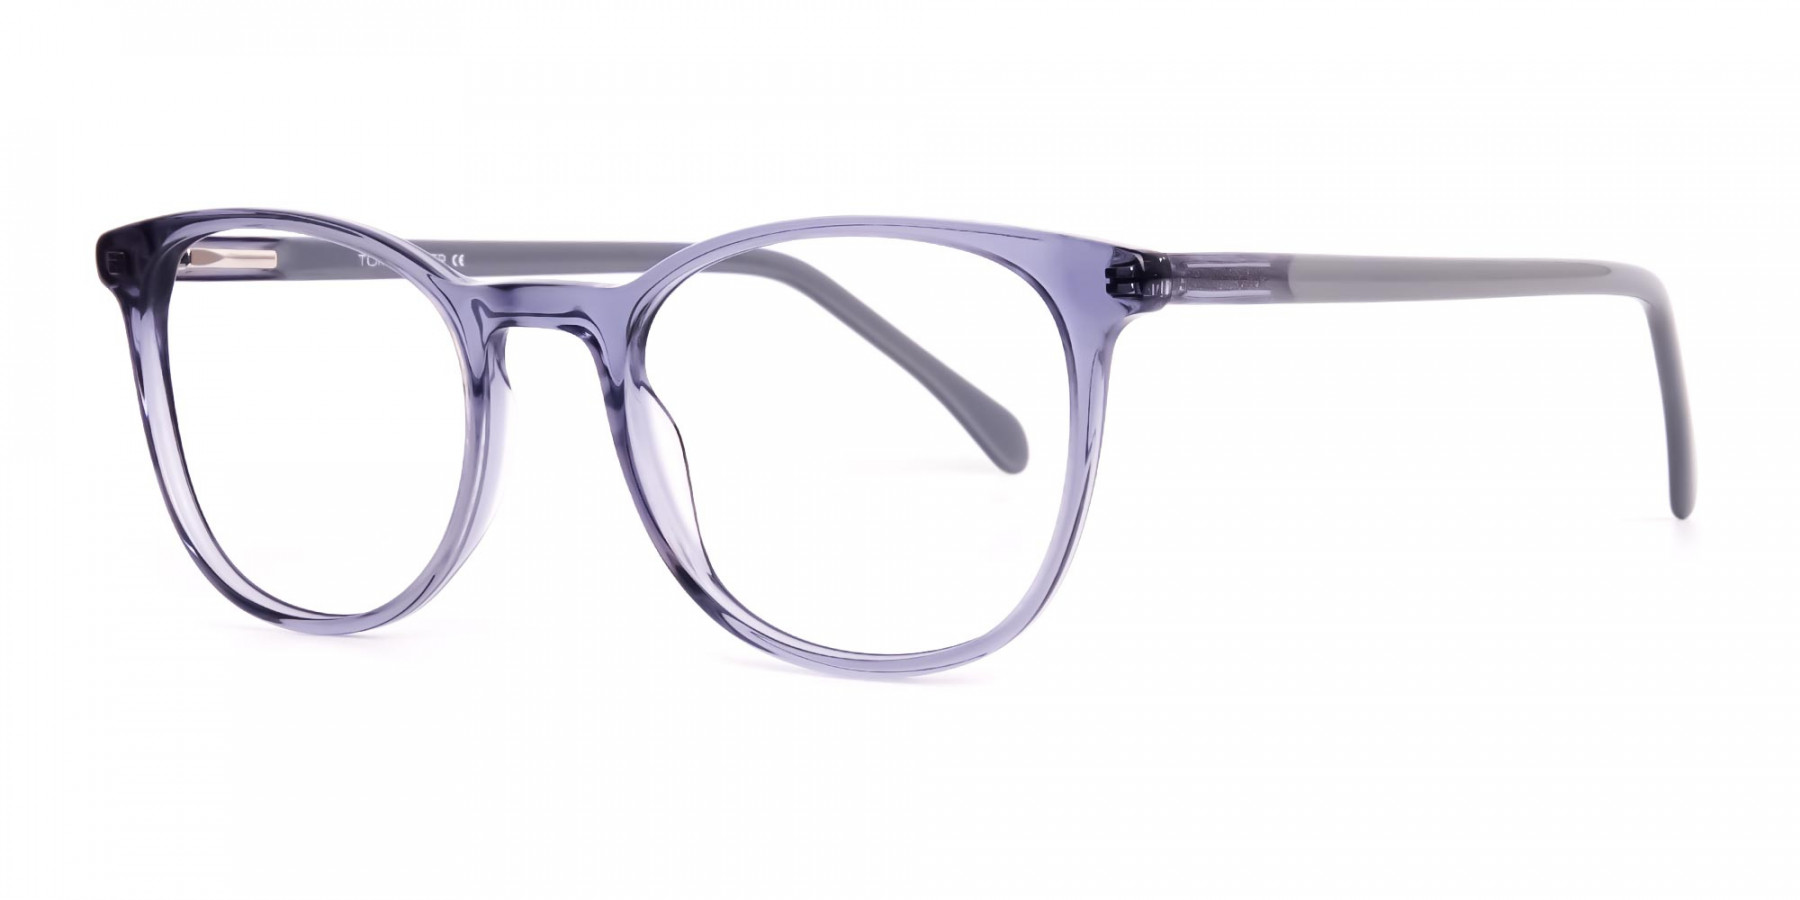 Crystal-Space-Grey-Full-Rim-Round-Glasses-Frames-1